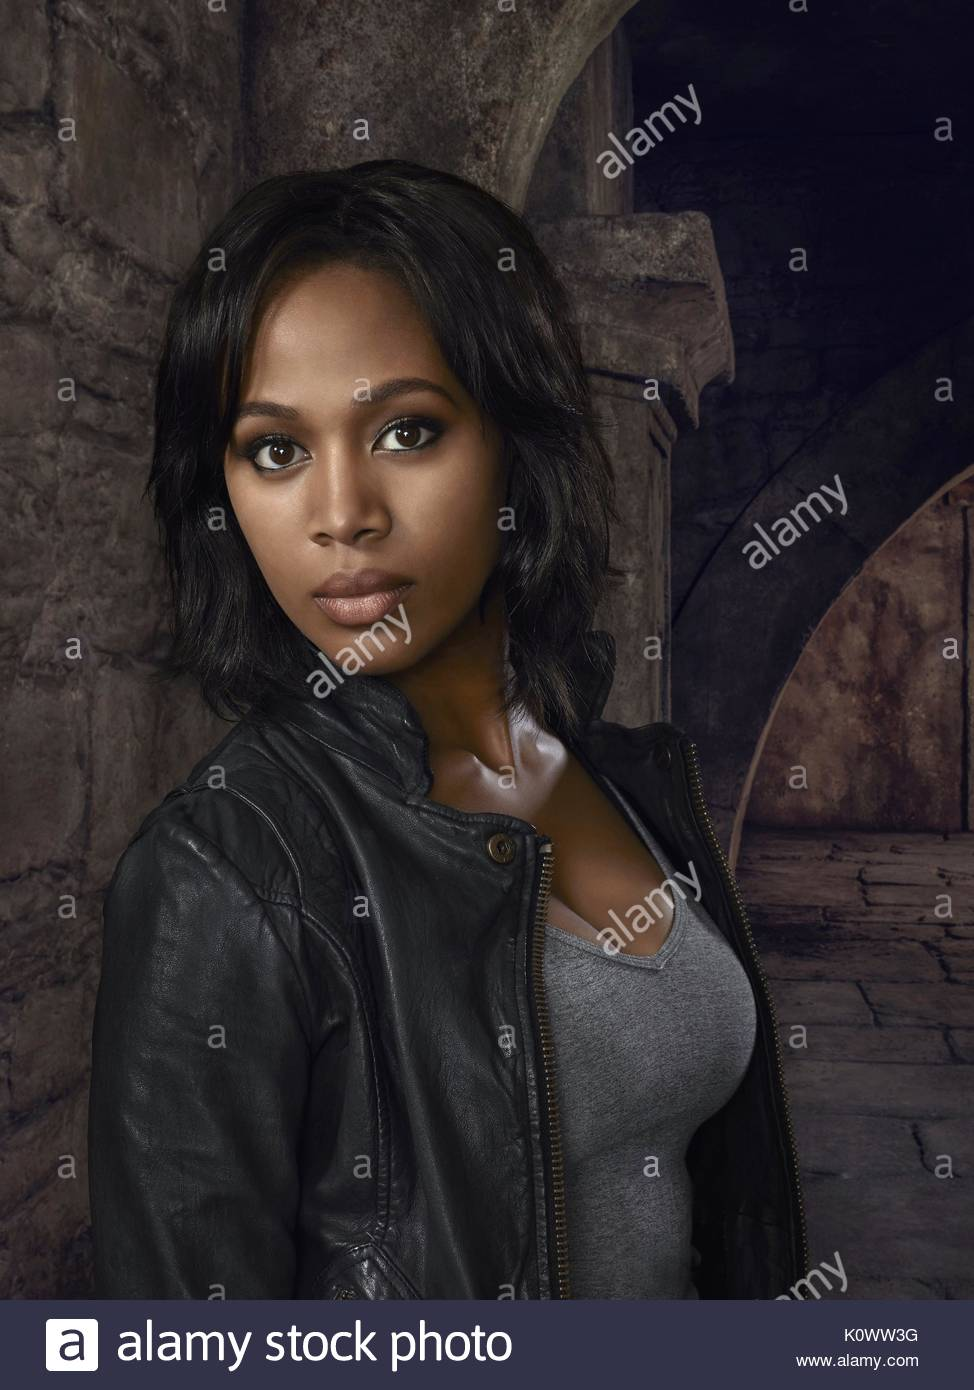 NICOLE BEHARIE SLEEPY HOLLOW : SEASON 3 (2015) - Stock Image